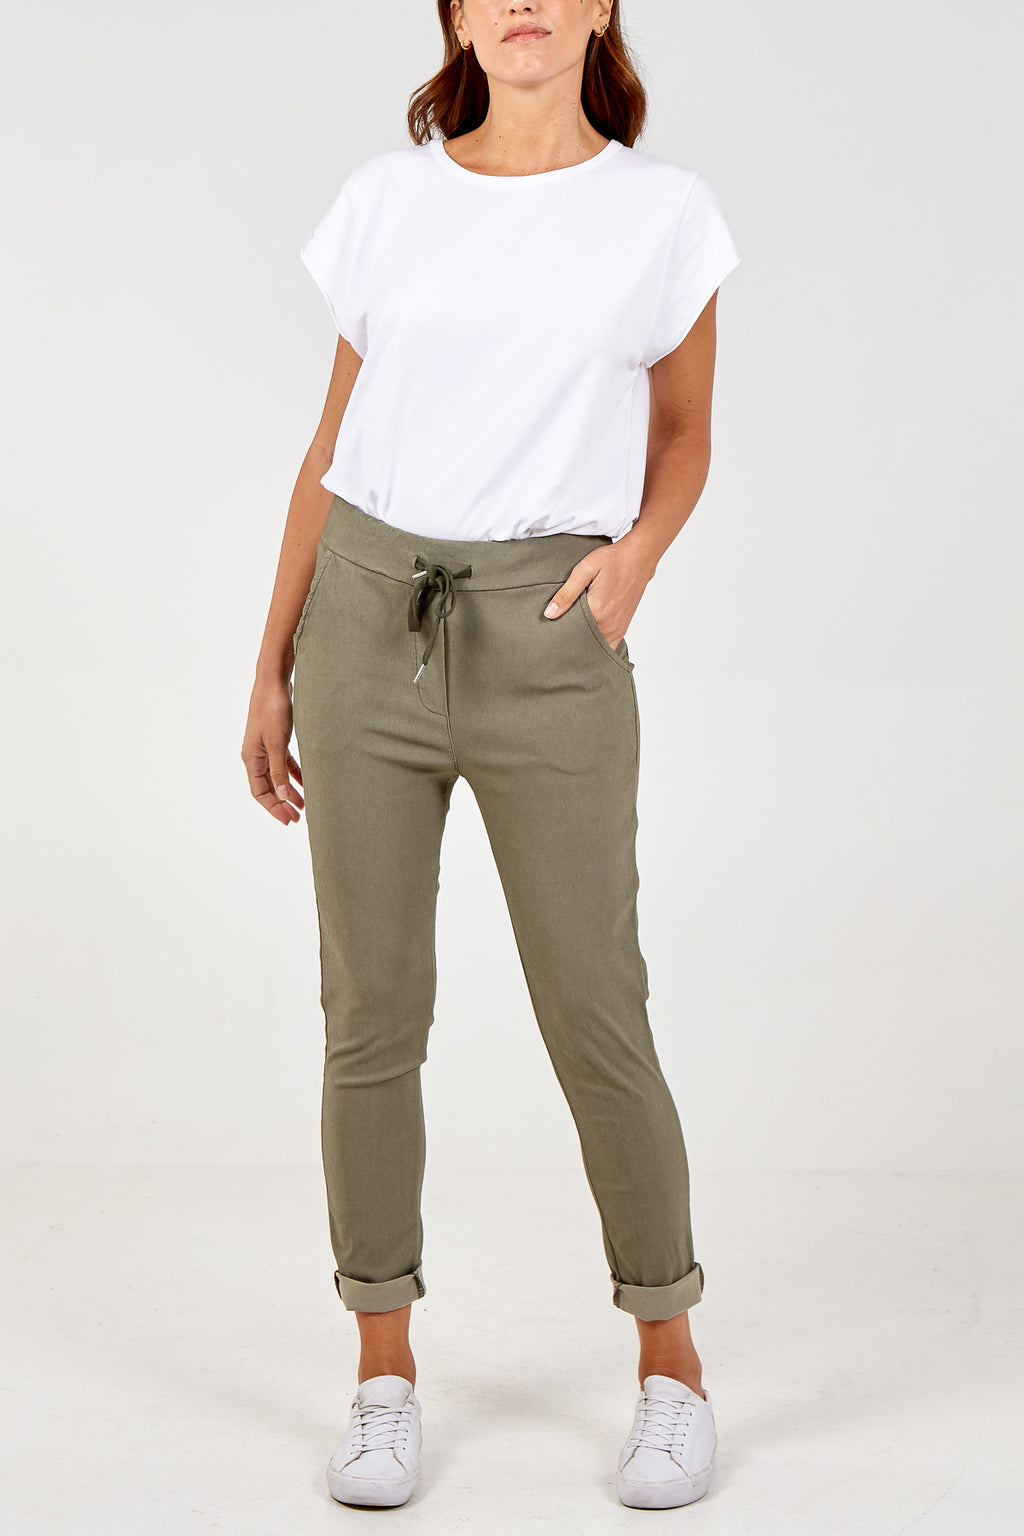 Magic Plain Smart Non-Crush Trouser